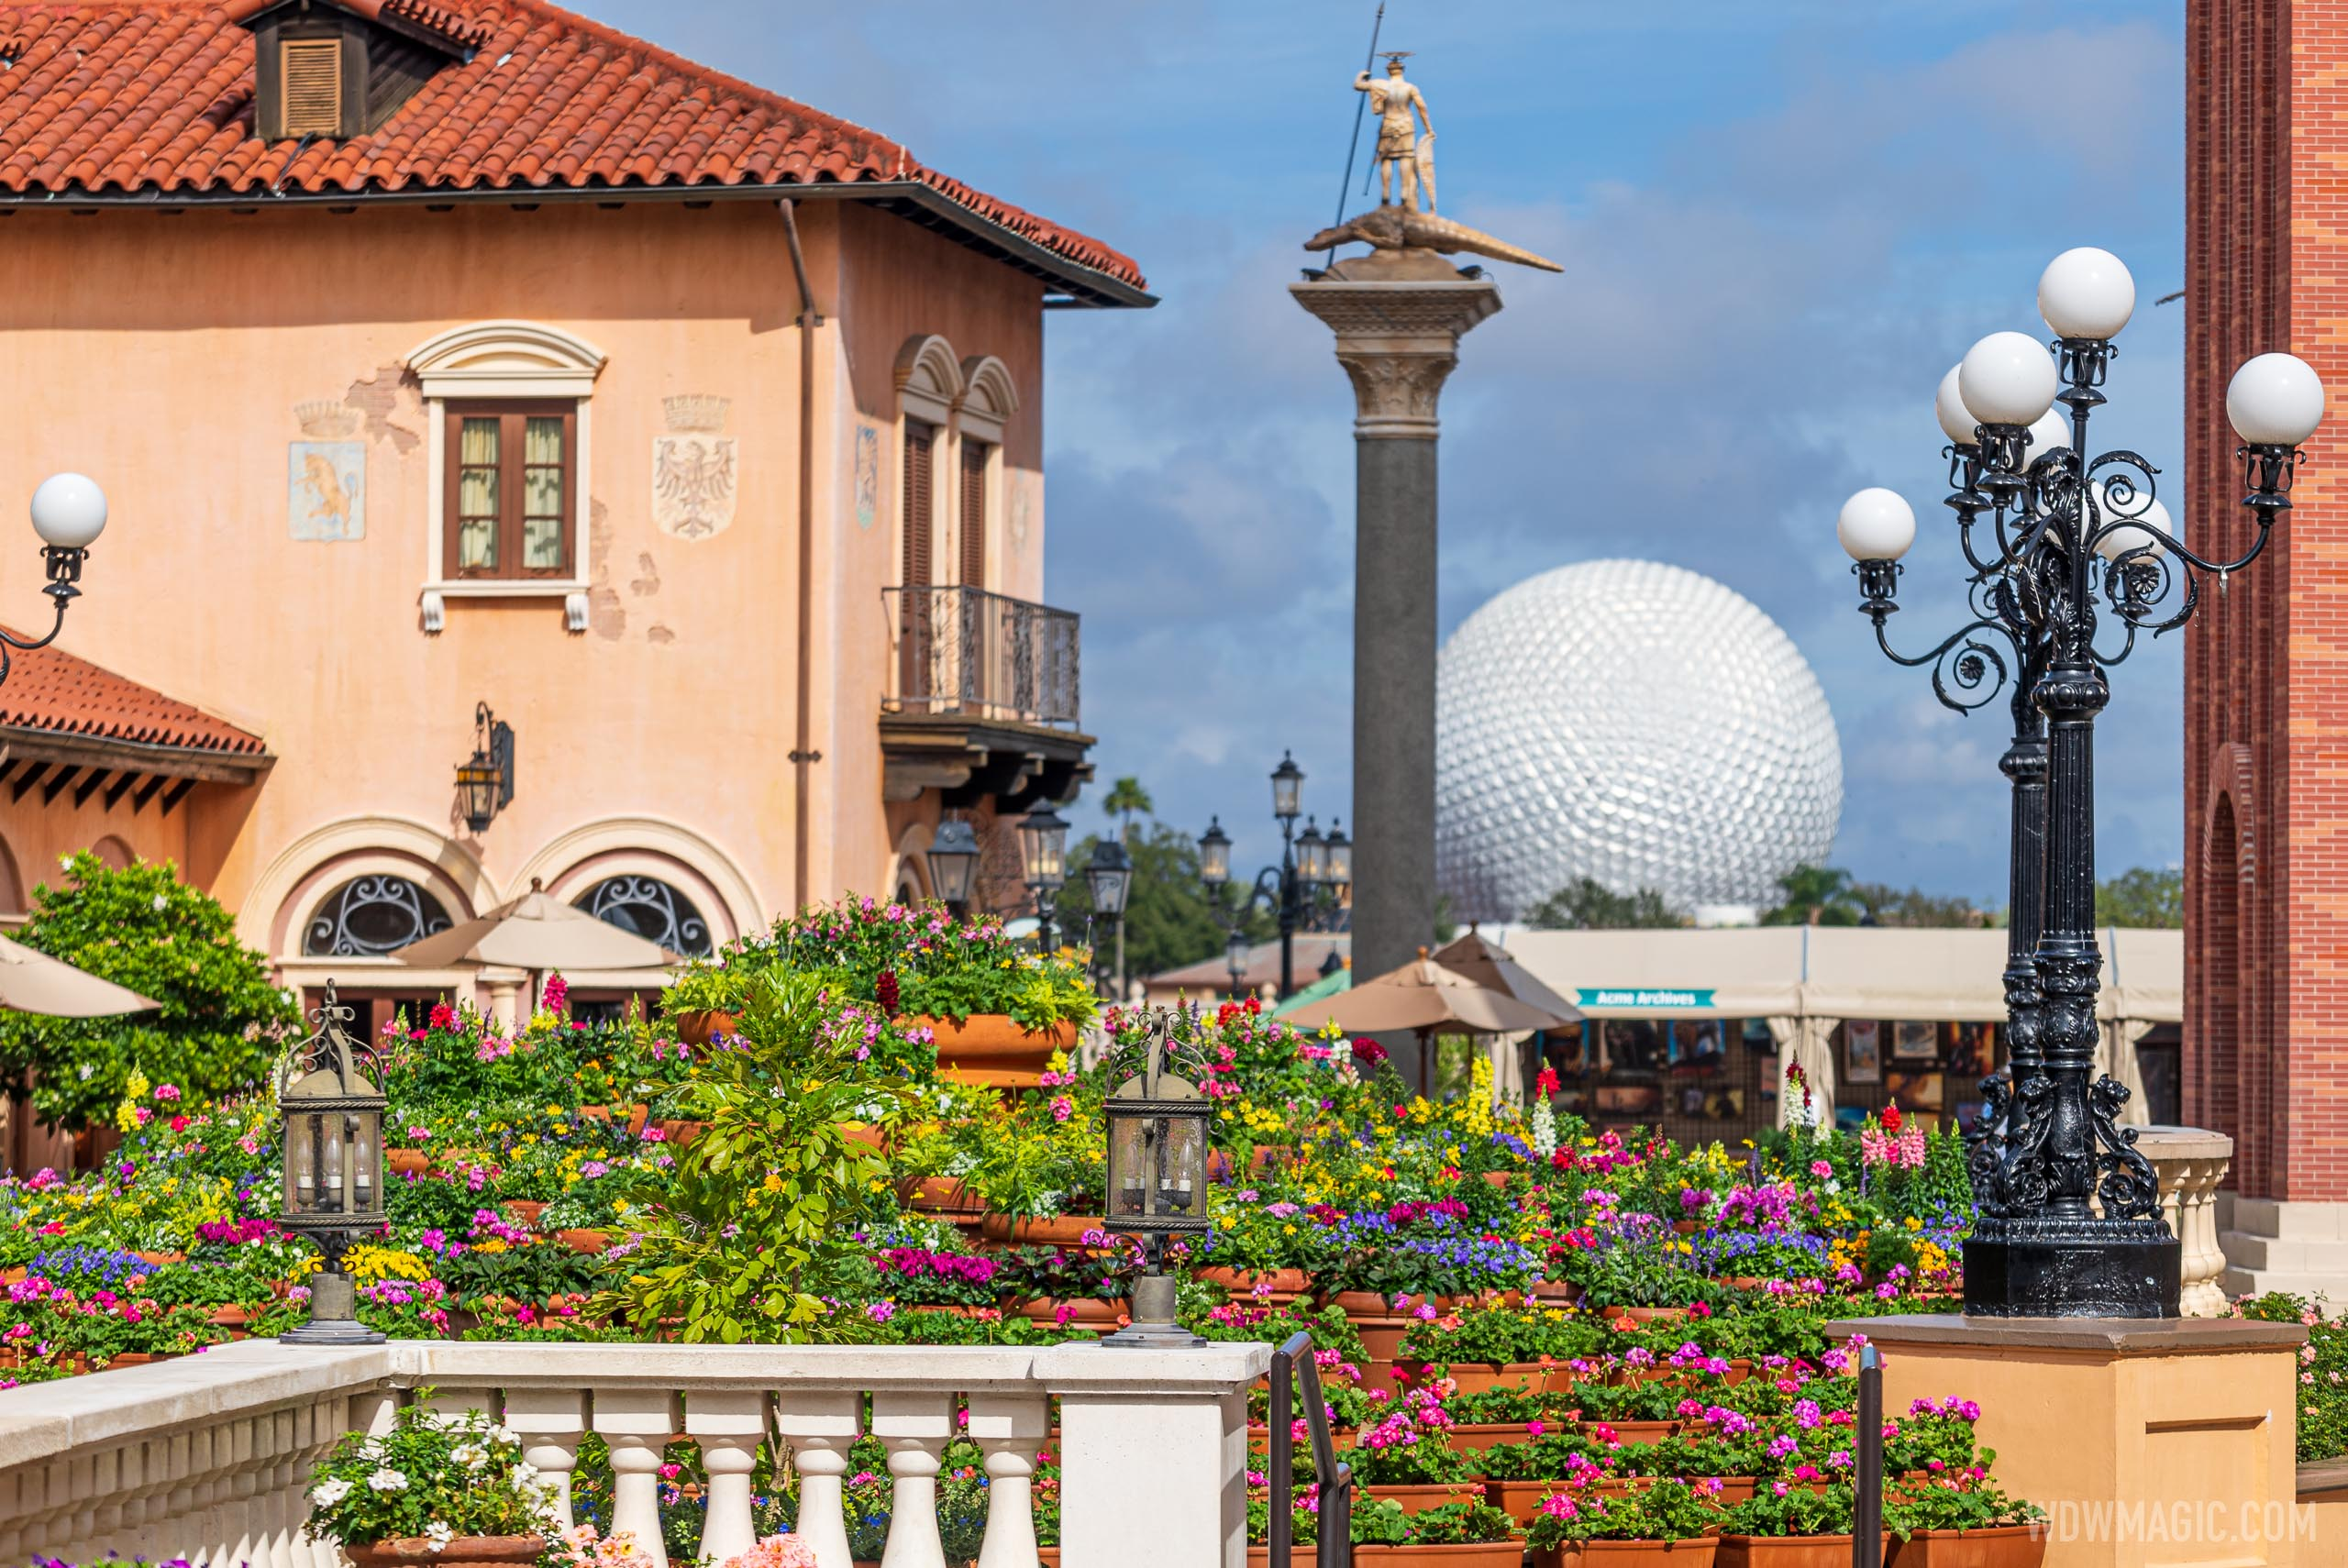 Flower and Garden Festival is driving attendance at EPCOT this Spring